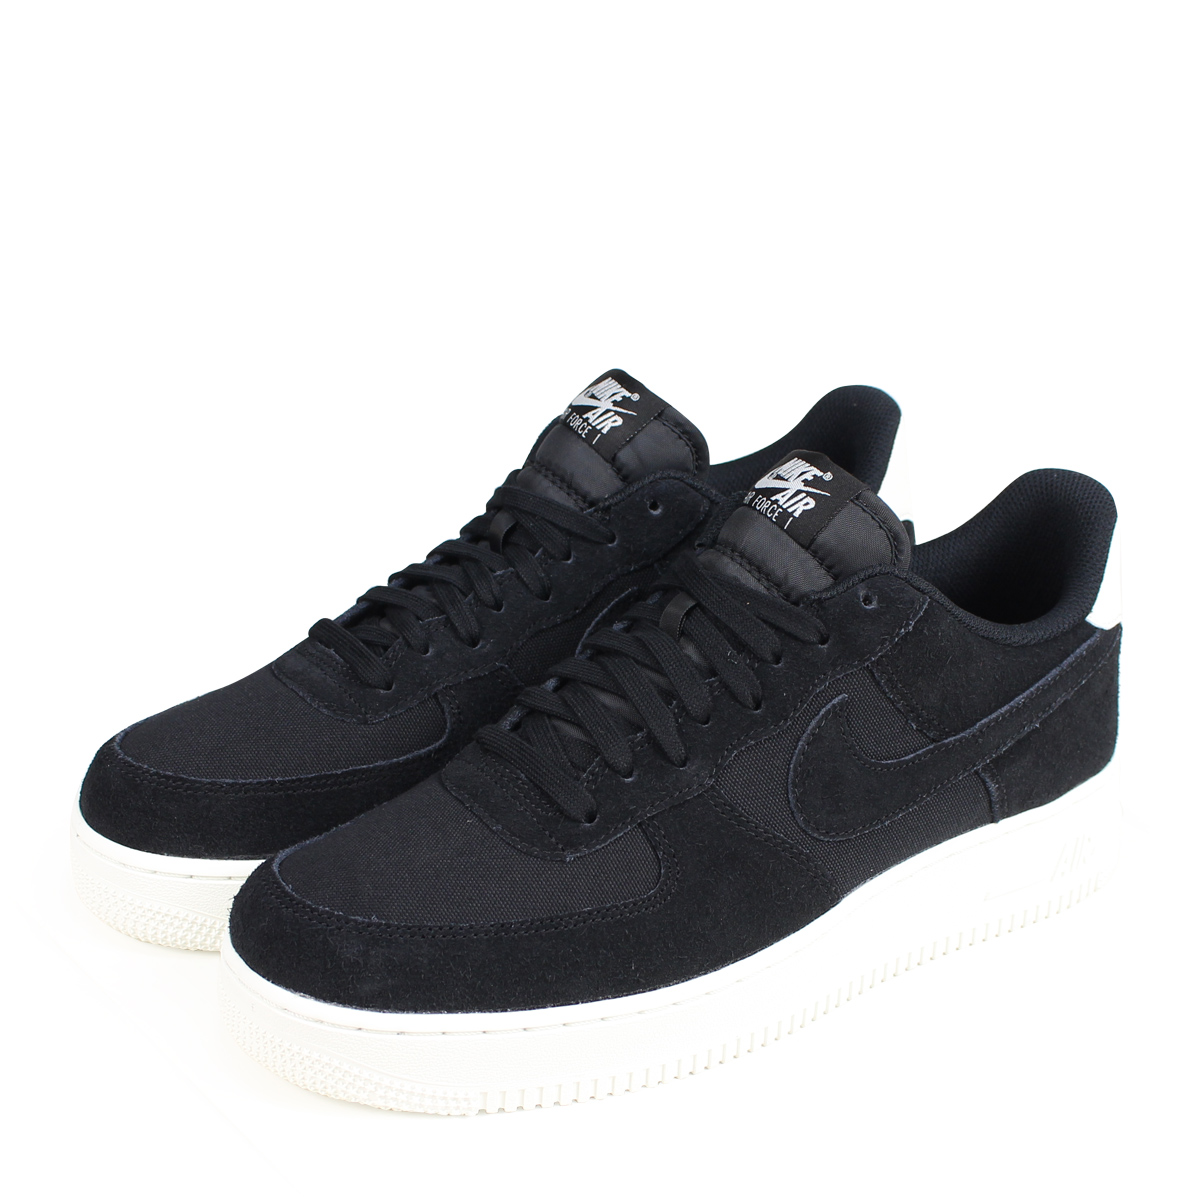 nike air force 07 suede black